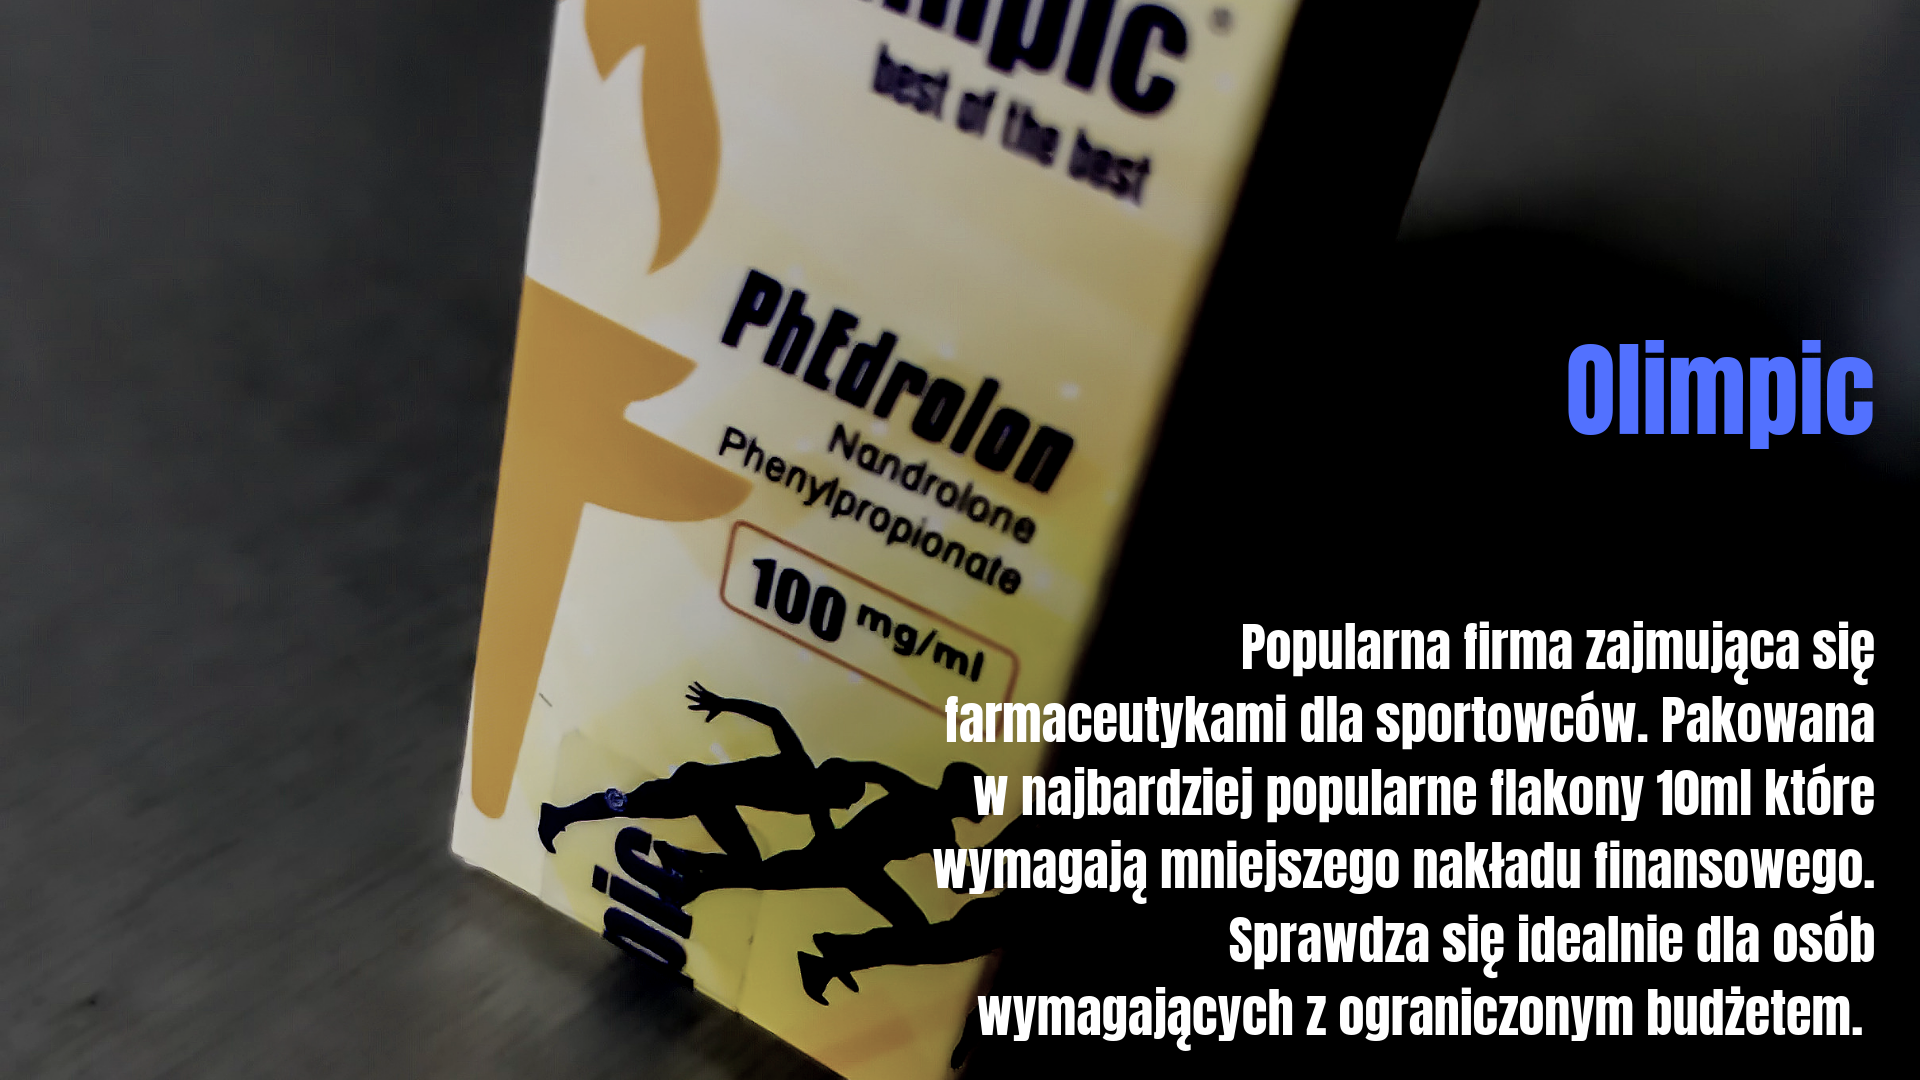 olimpic pharma best of the best anaboliki25.pl